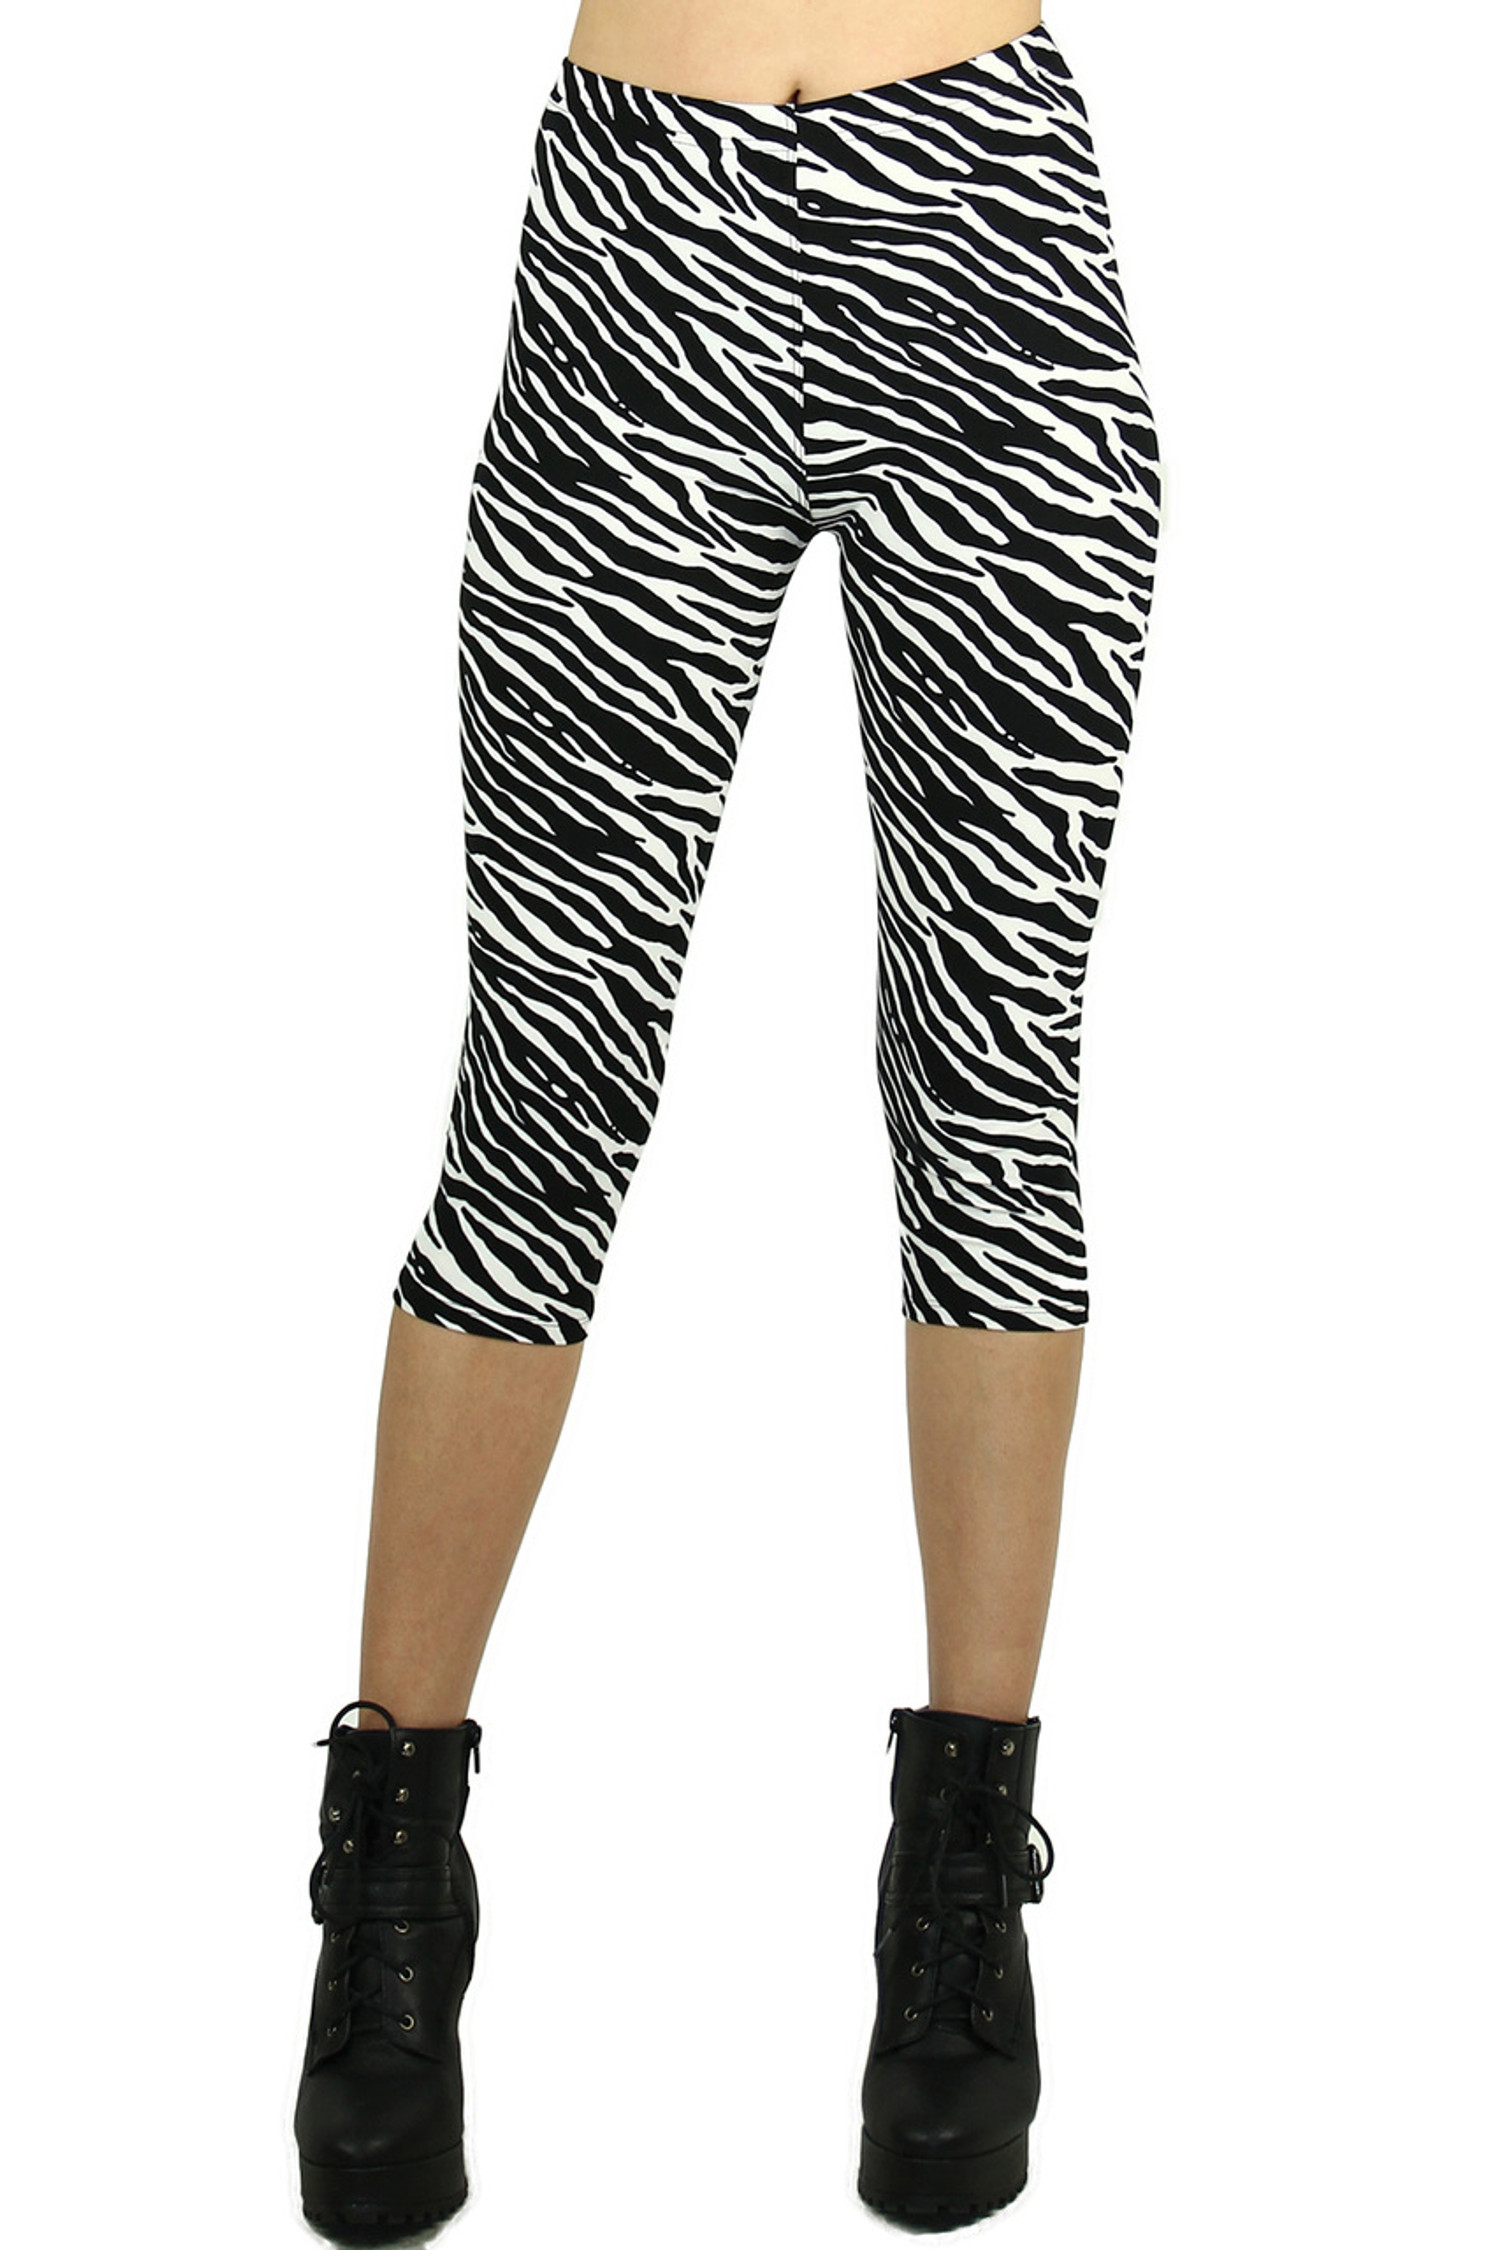 Sexy Zebra Capri Leggings